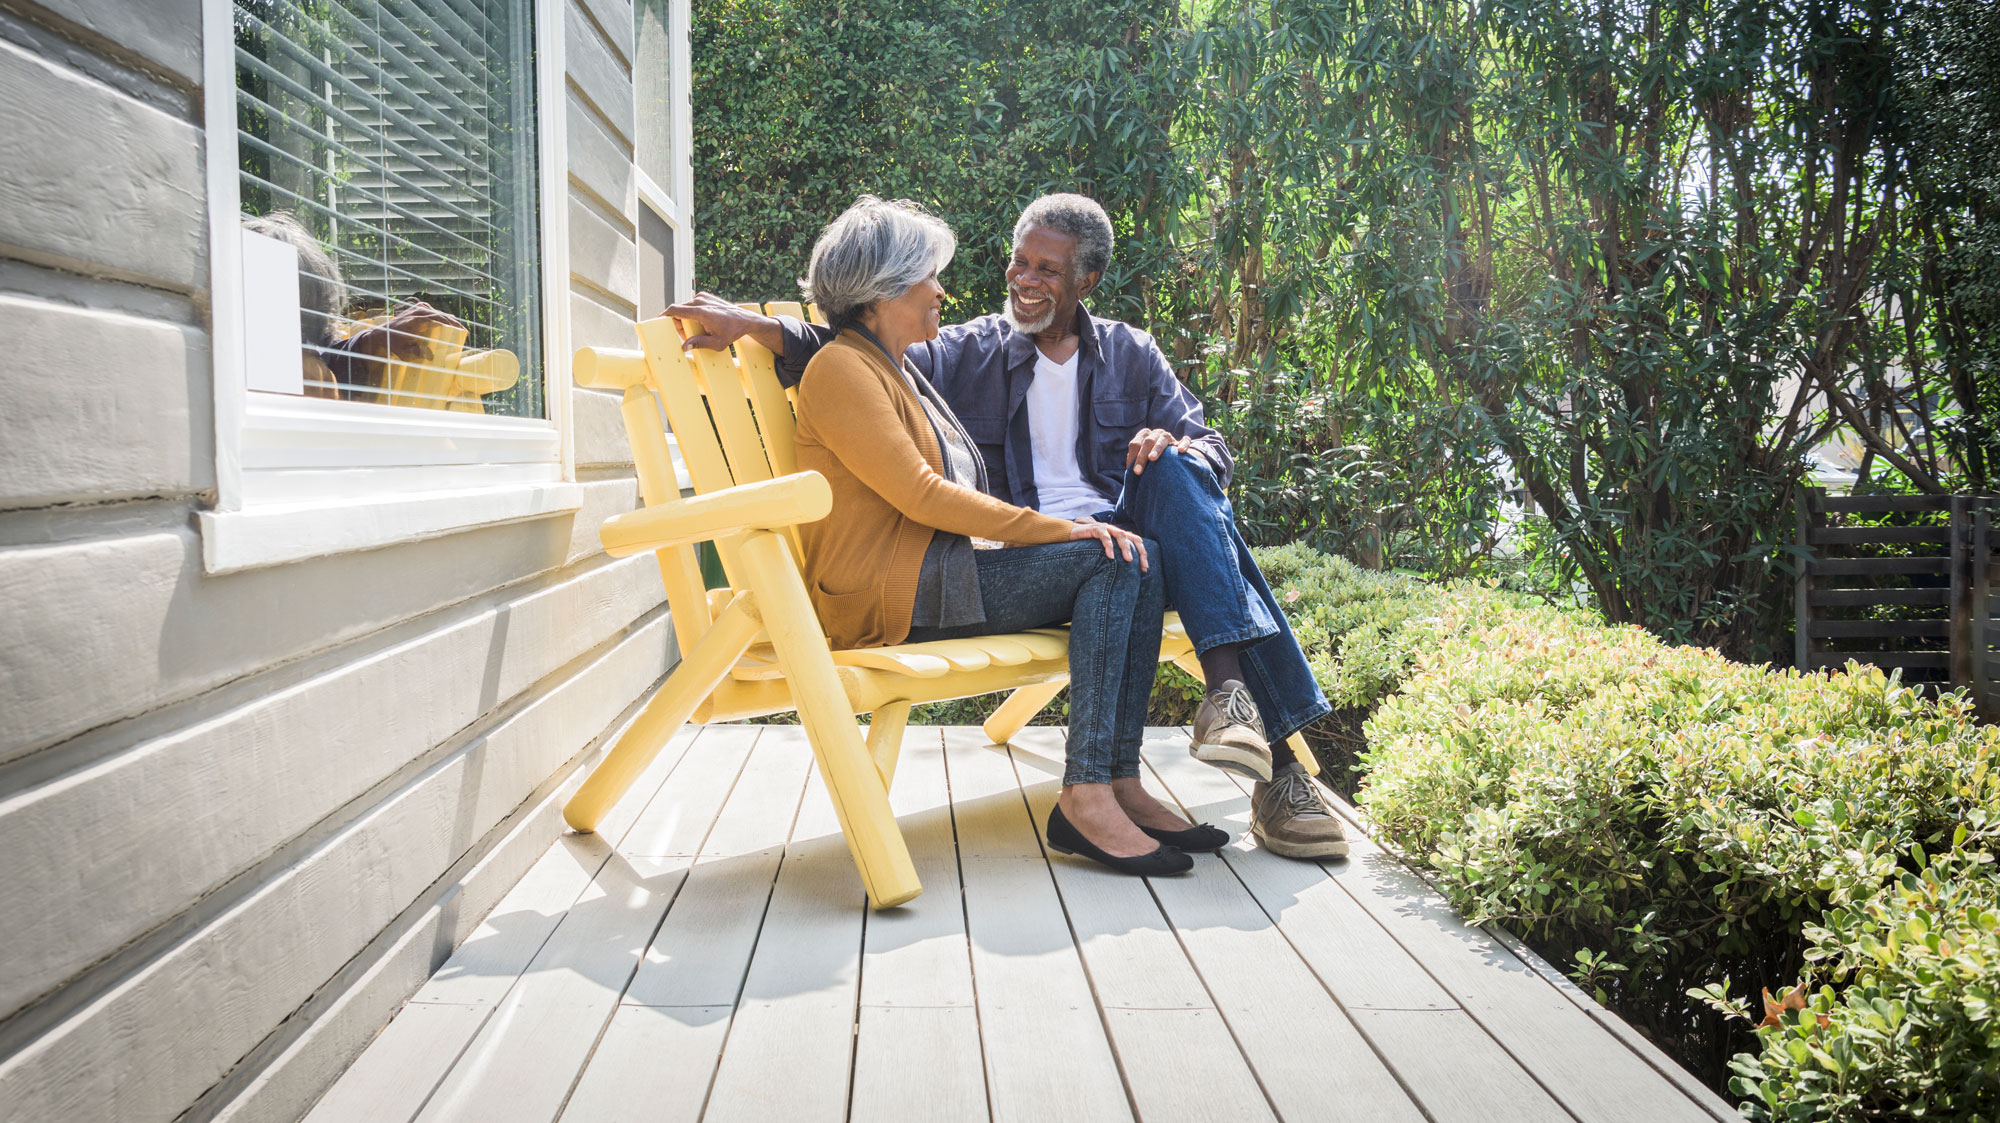 Elderly couple sitting on bench on a porch